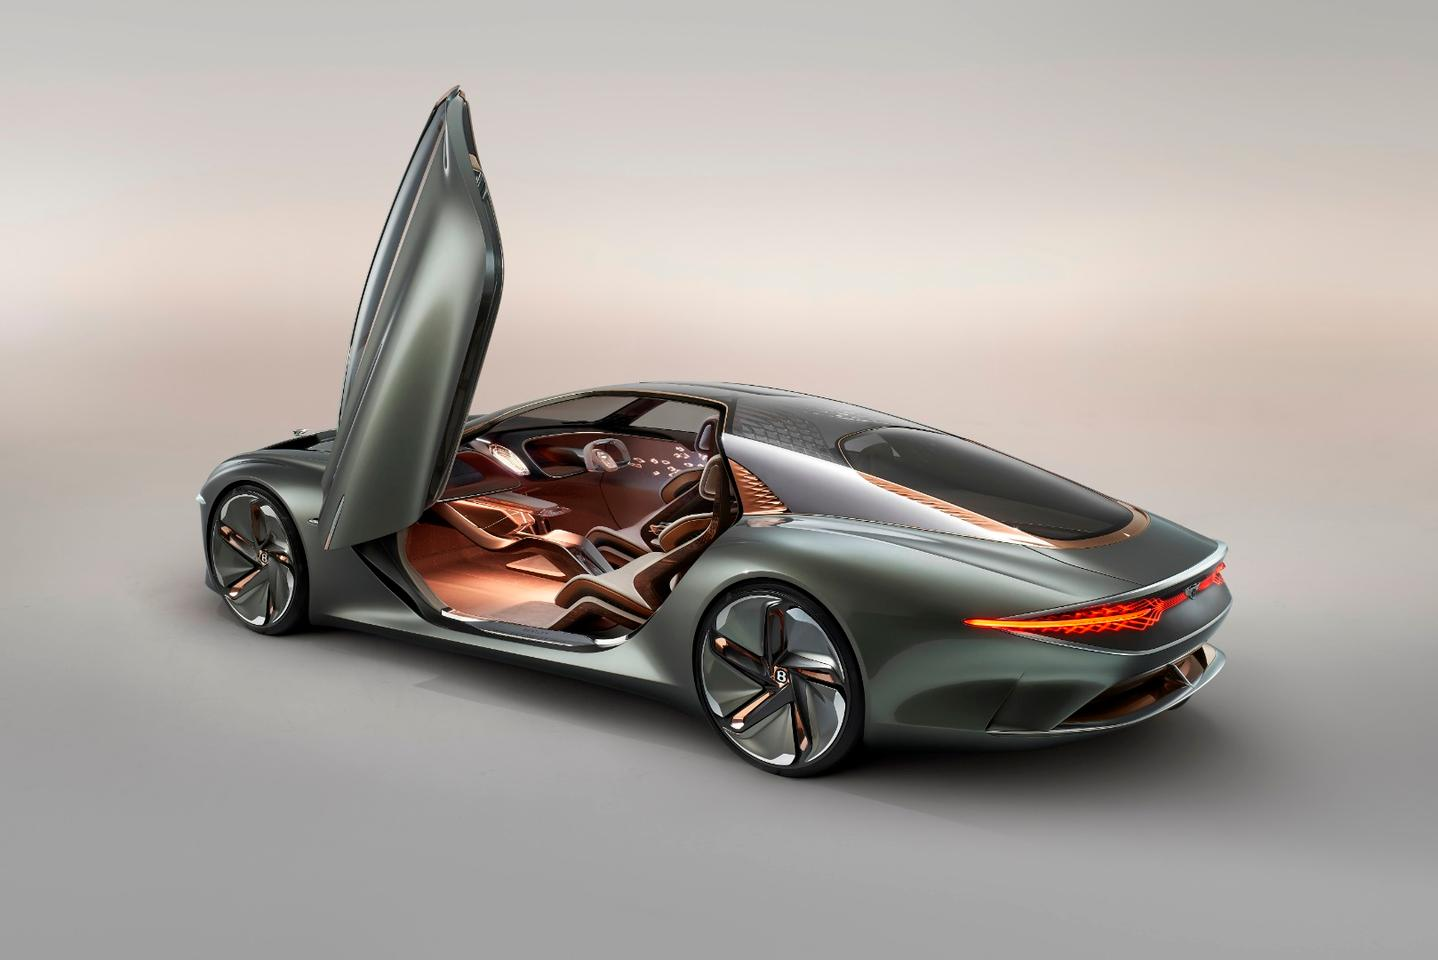 The Bentley EXP 100 GT's massive doors rise to almost 10 feet when open